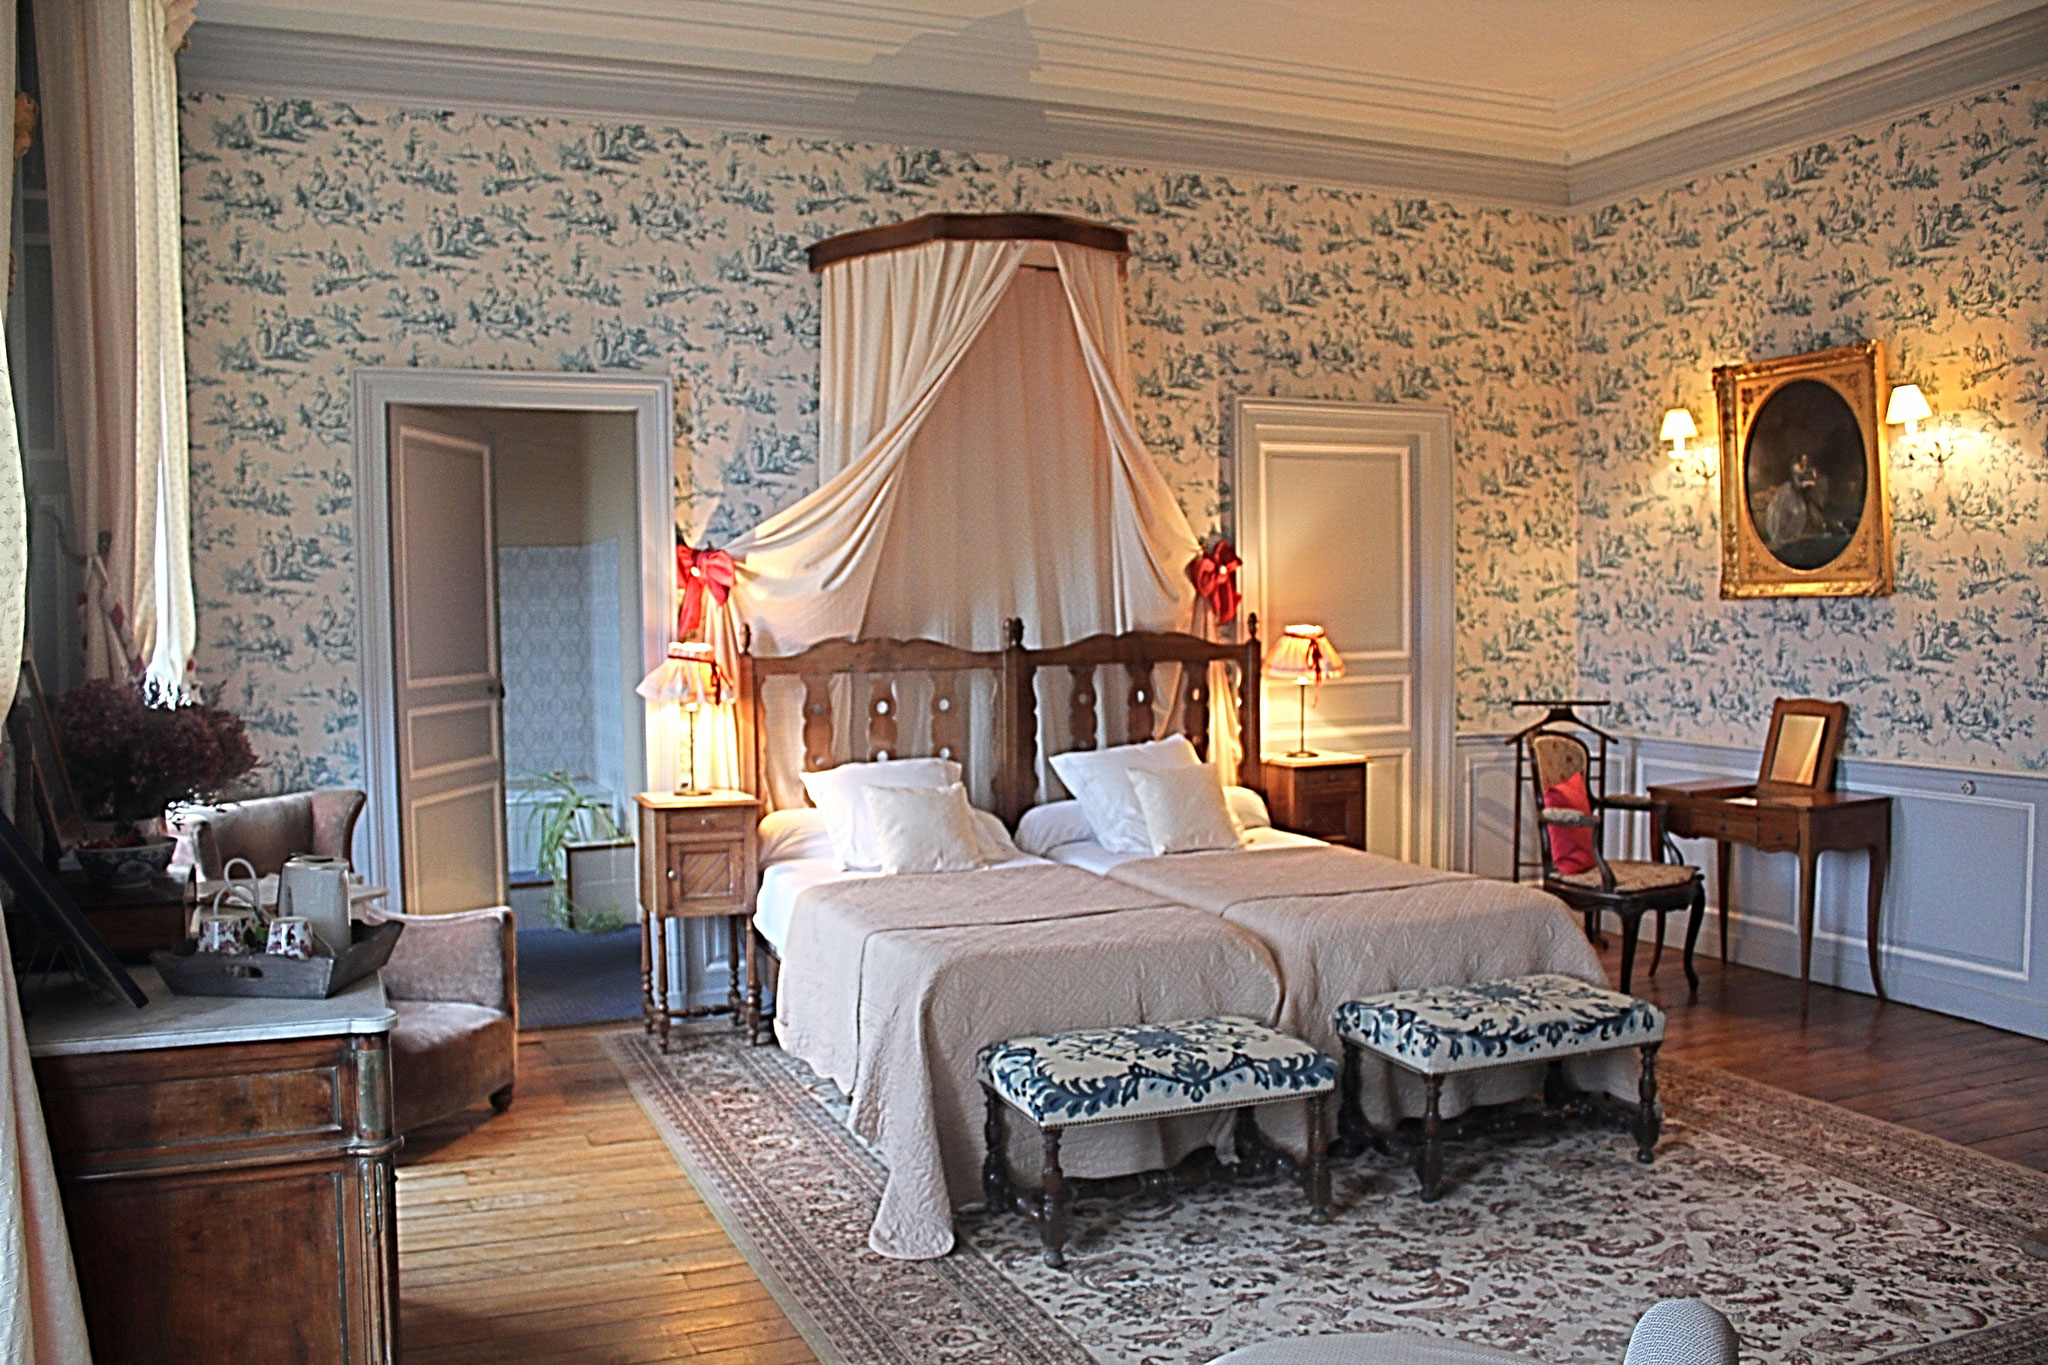 Chambre d hote de charme chateauduval chambres hotes gites